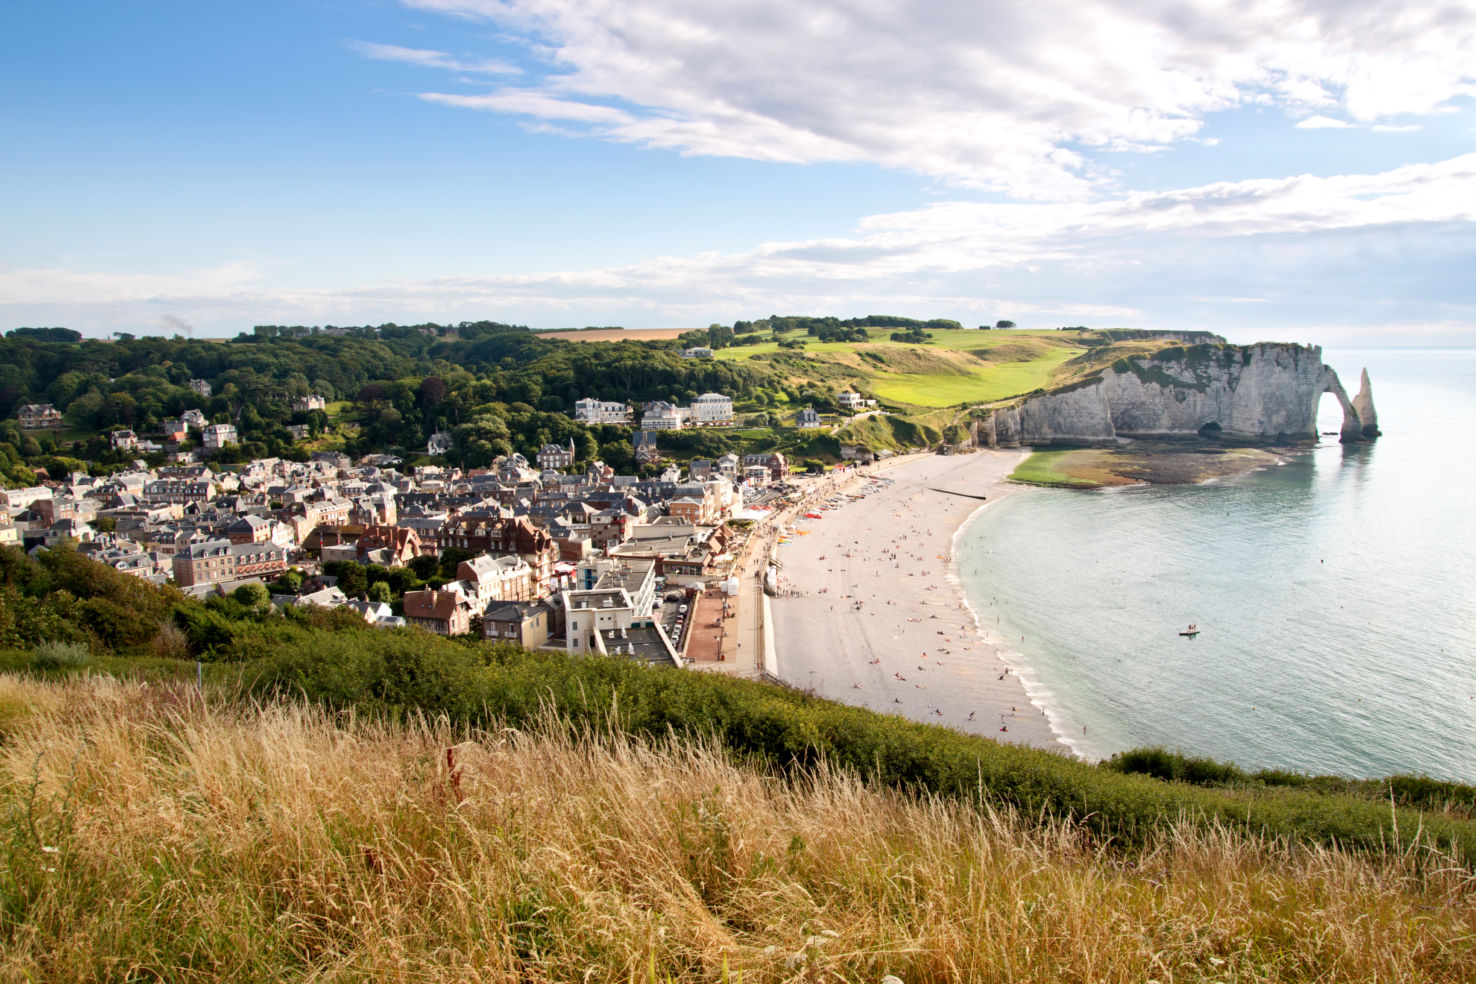 the beaches and cliffs of Etretat, Normandy.